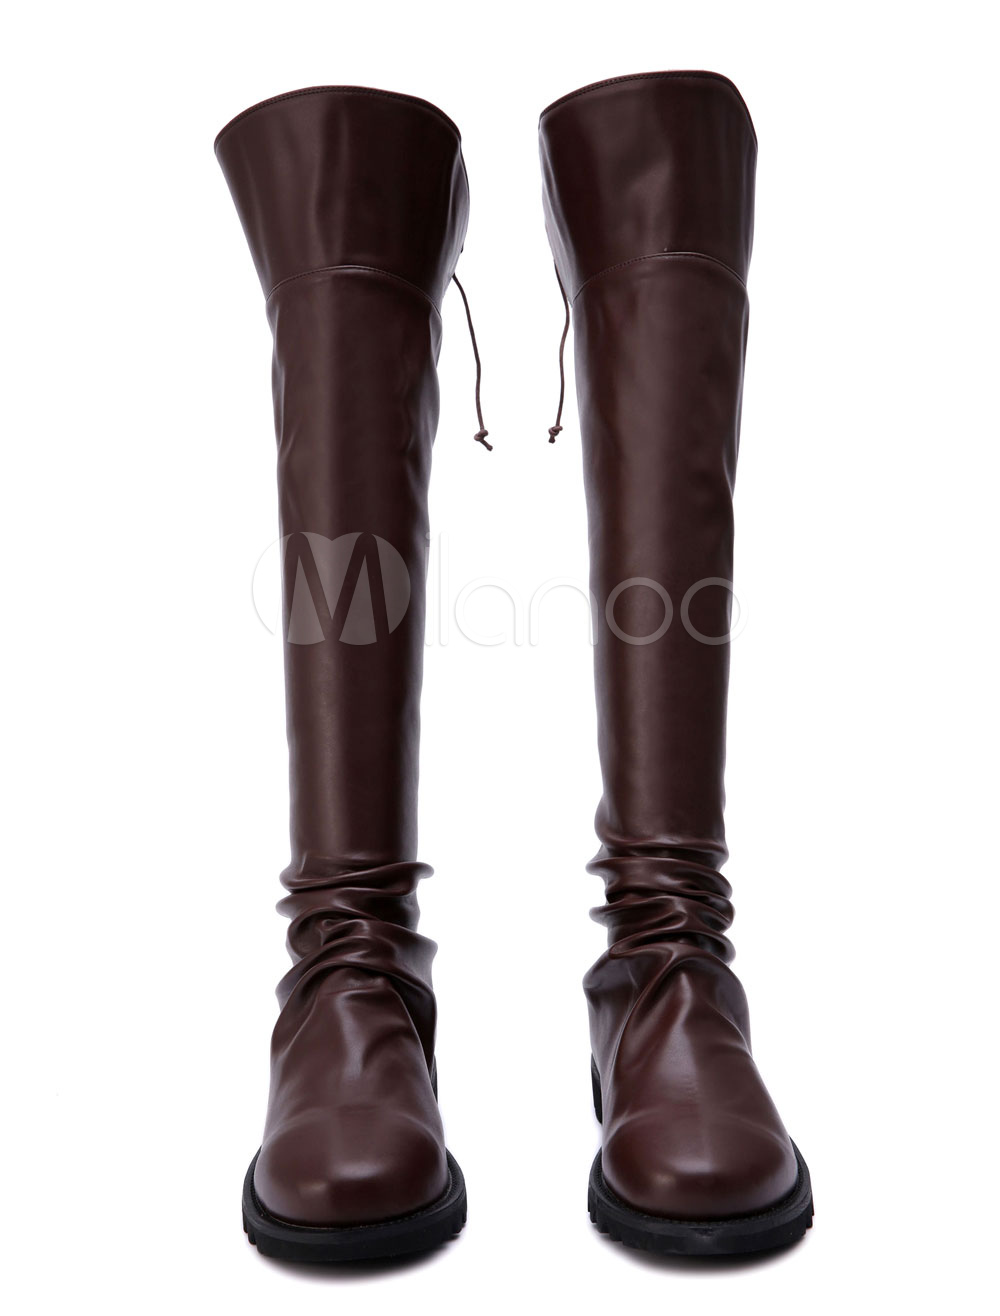 Buy Attack on Titan Shingeki no Kyojin Survey Corps Scout Regiment Cosplay Shoes Eren Jaeger Levi Cosplay Shoes Halloween for $191.99 in Milanoo store